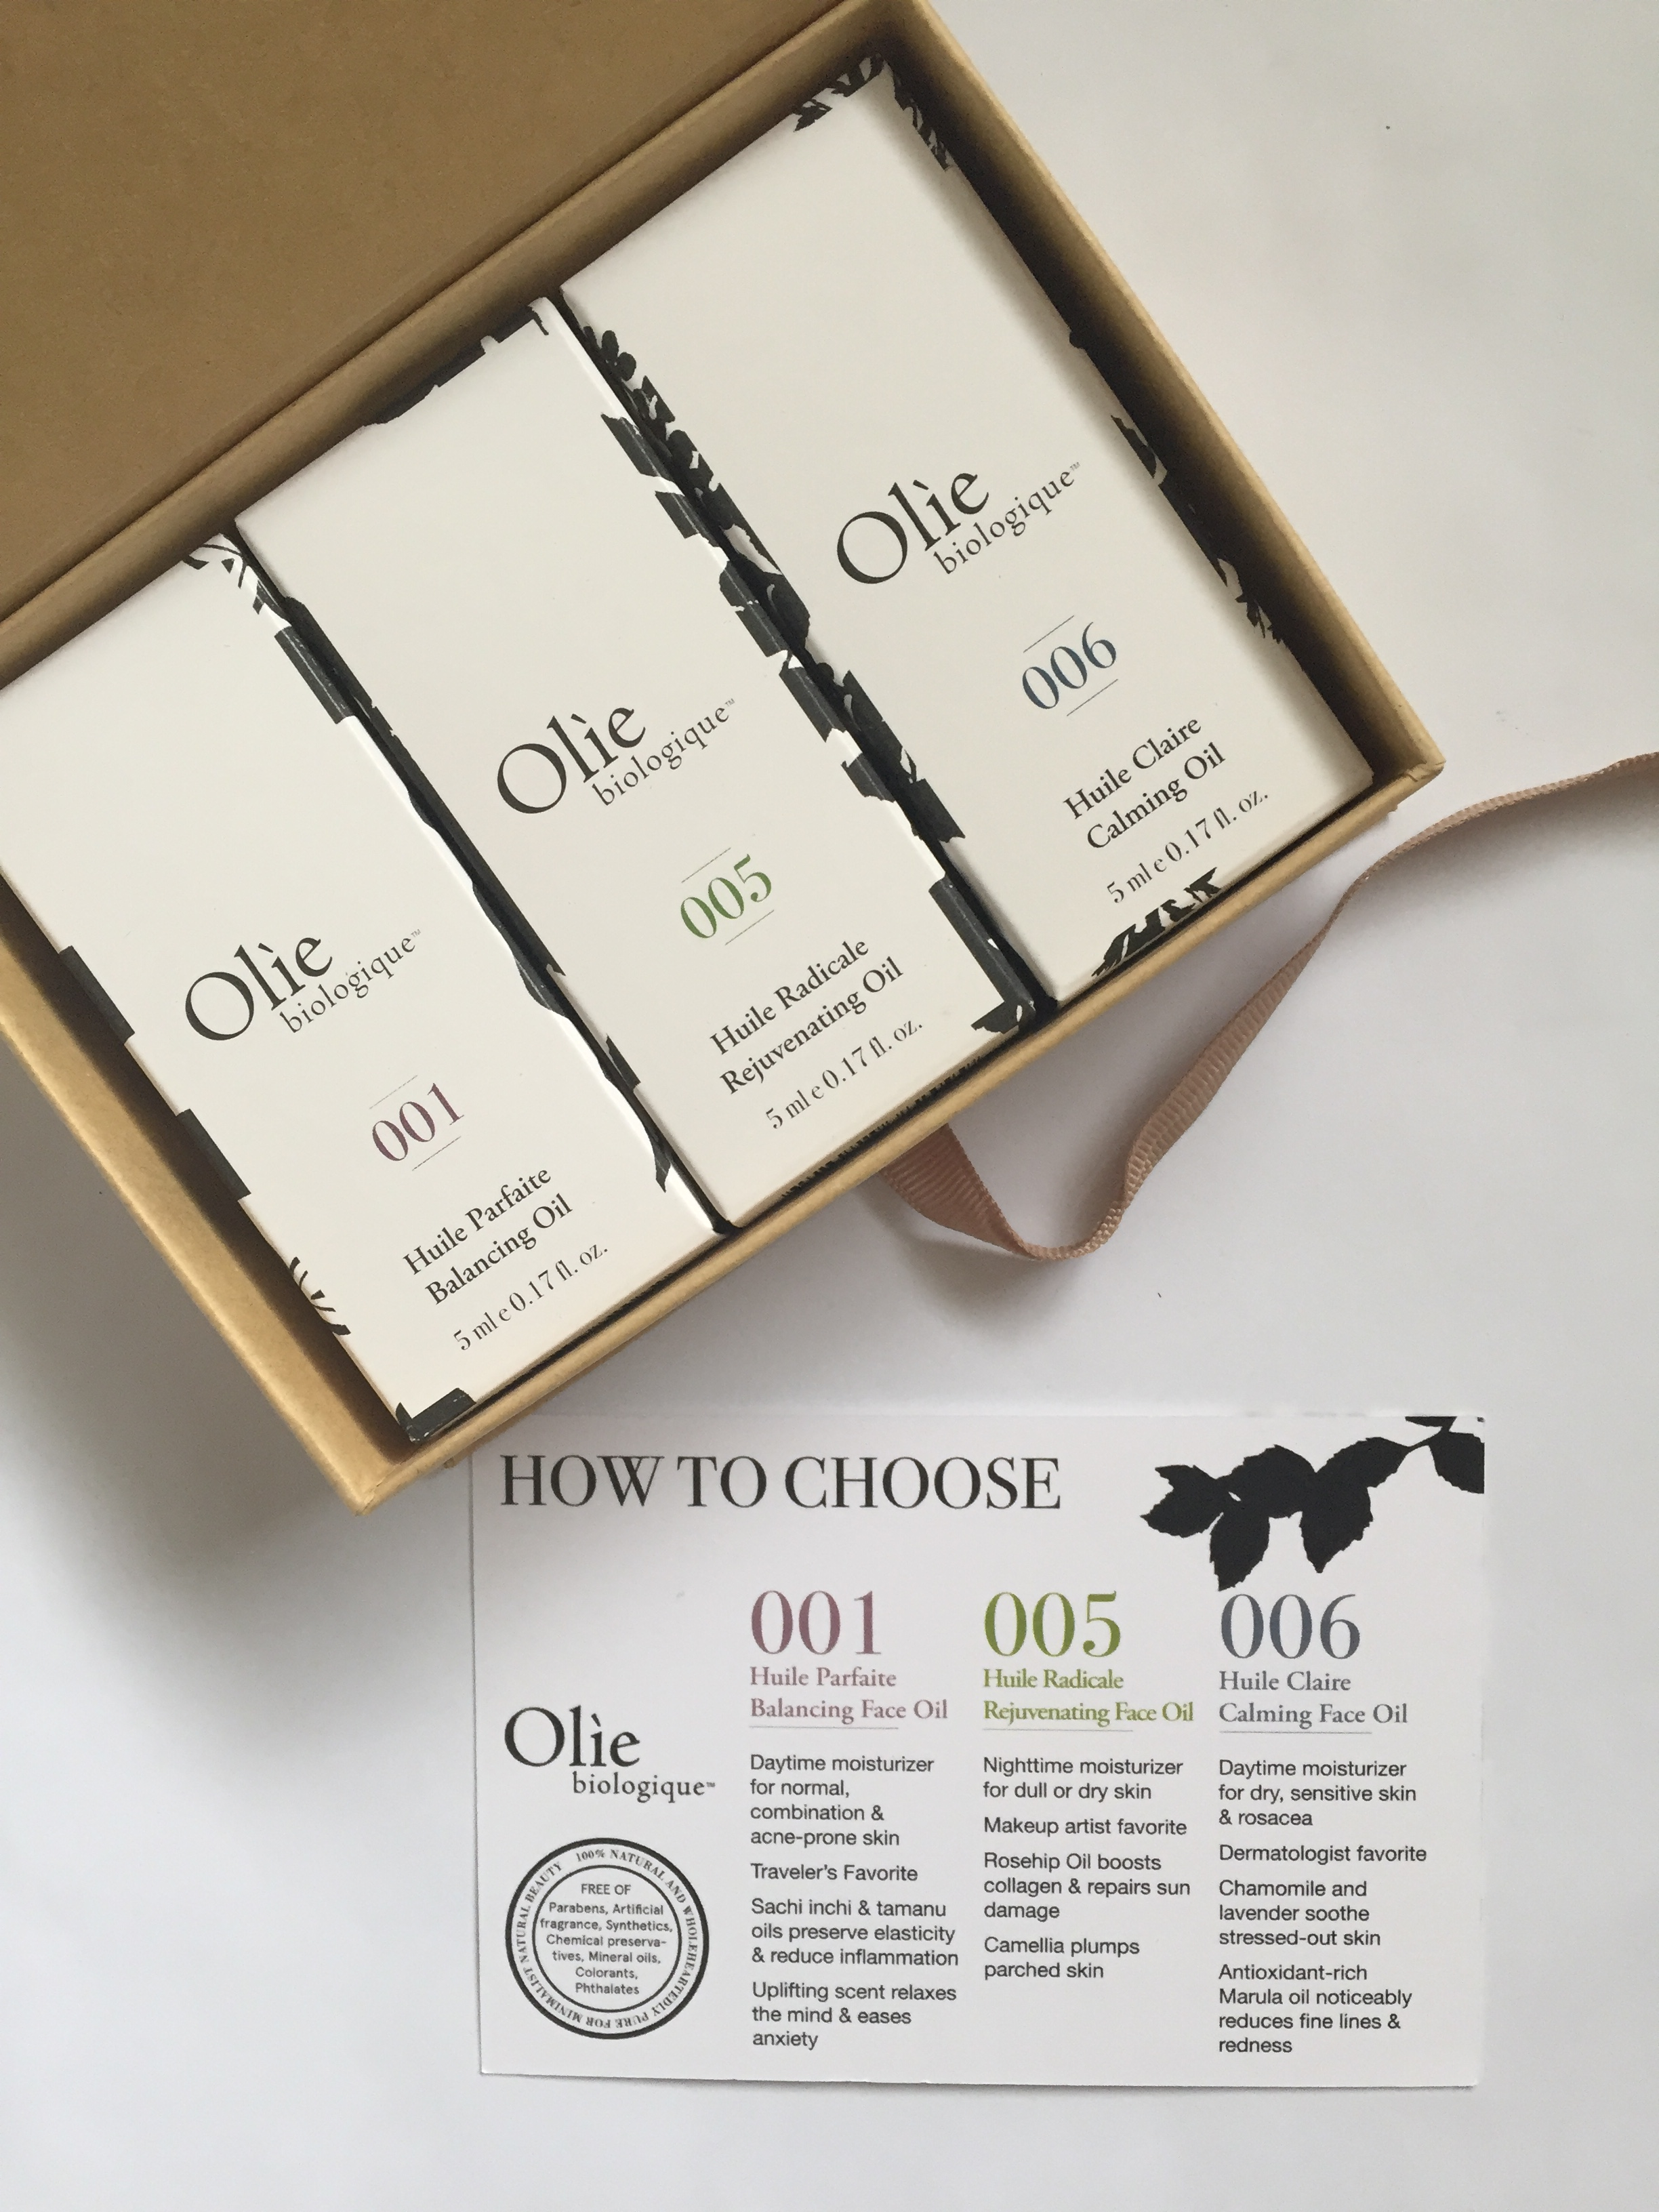 New: Olie Biologique Tres Olie: Trio of Face Oils